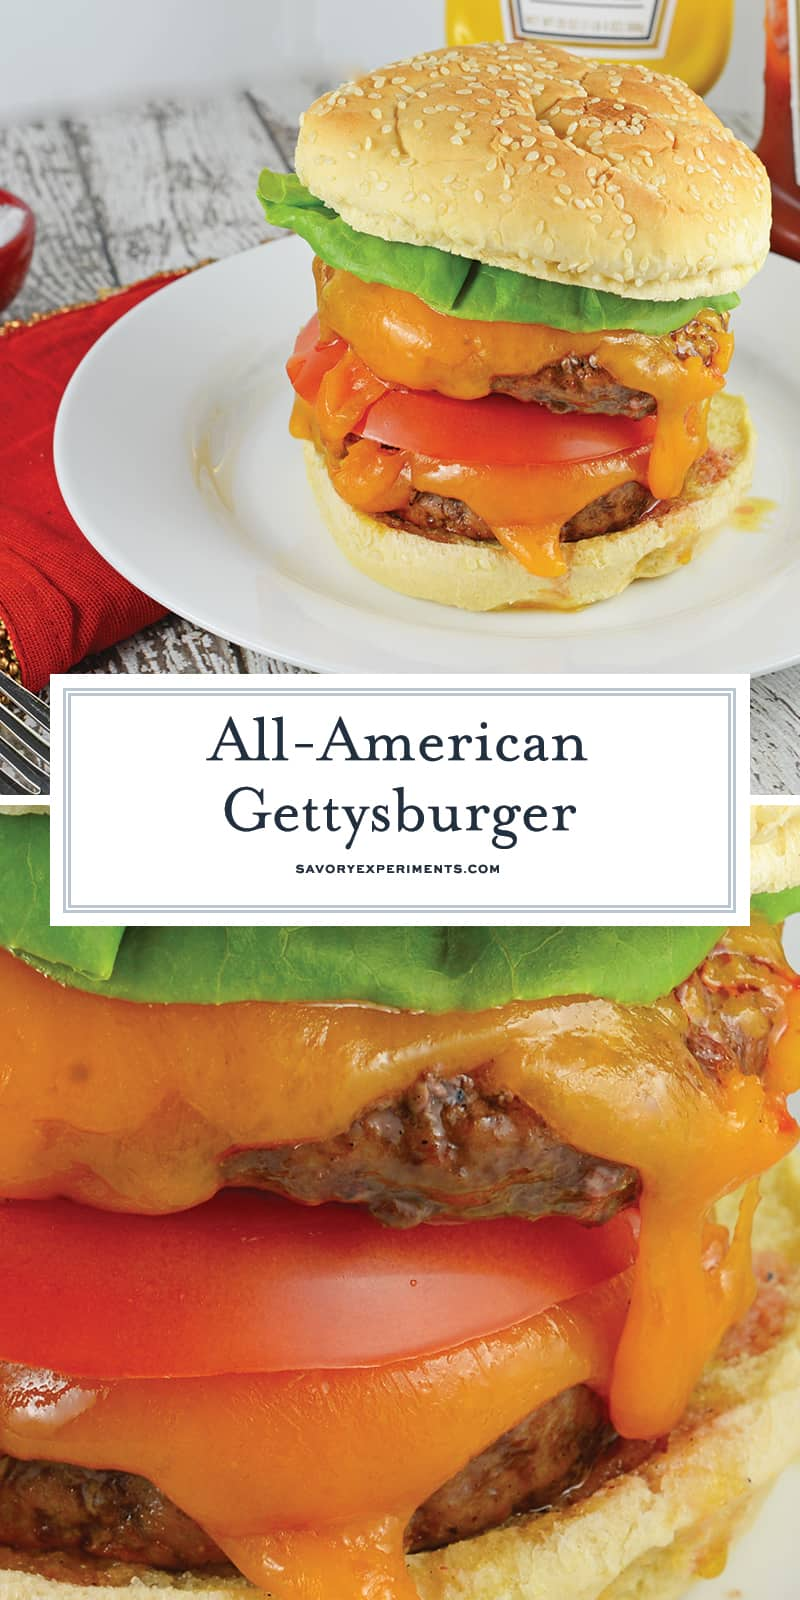 Do you love Gettysburger? I love Gettysburger! Everyone loves a Gettysburger! #gettysburger www.savoryexperiments.com